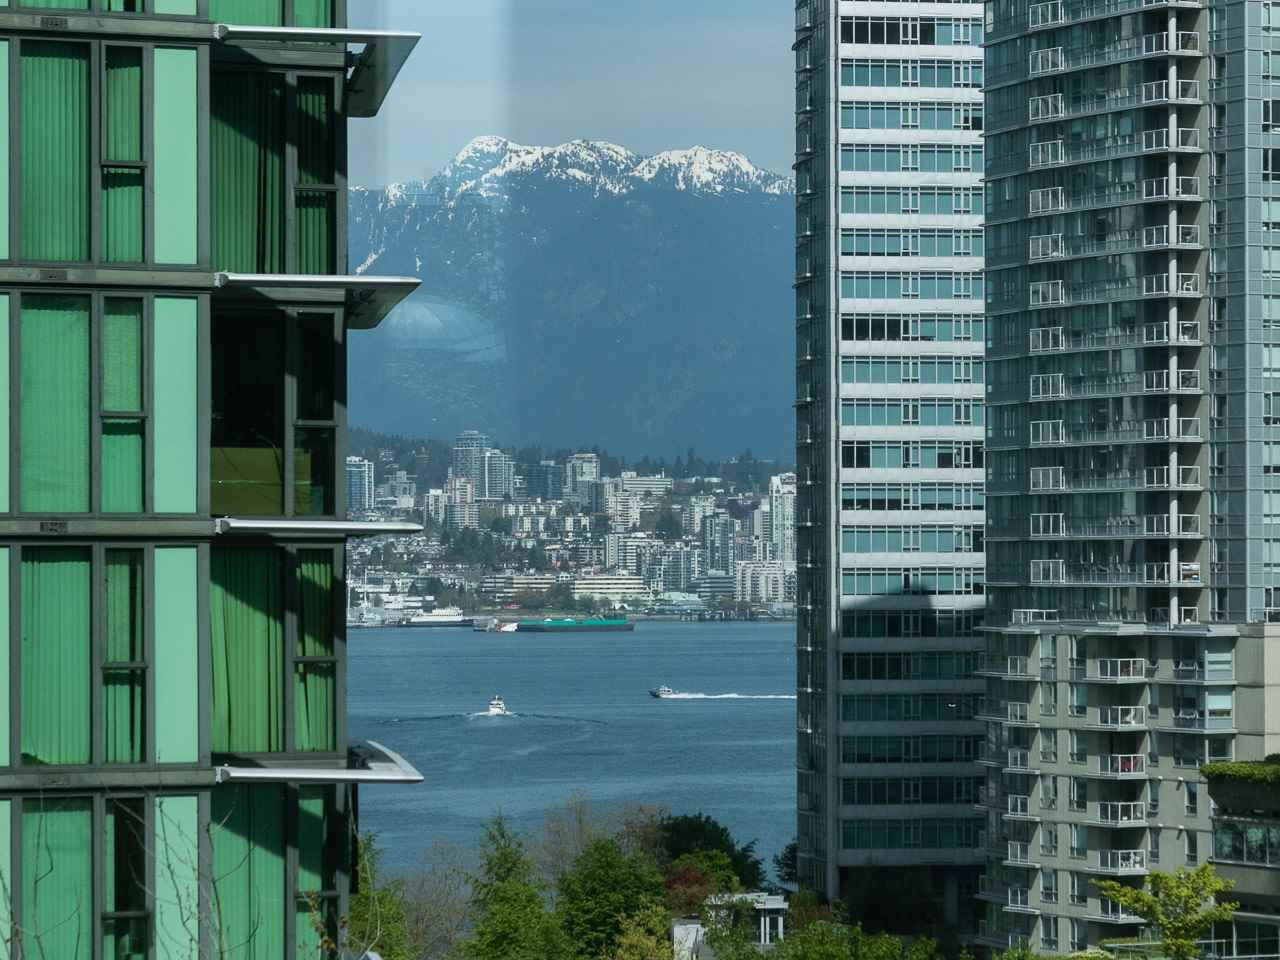 Main Photo: 501 1331 ALBERNI STREET in : West End VW Condo for sale : MLS®# R2288056